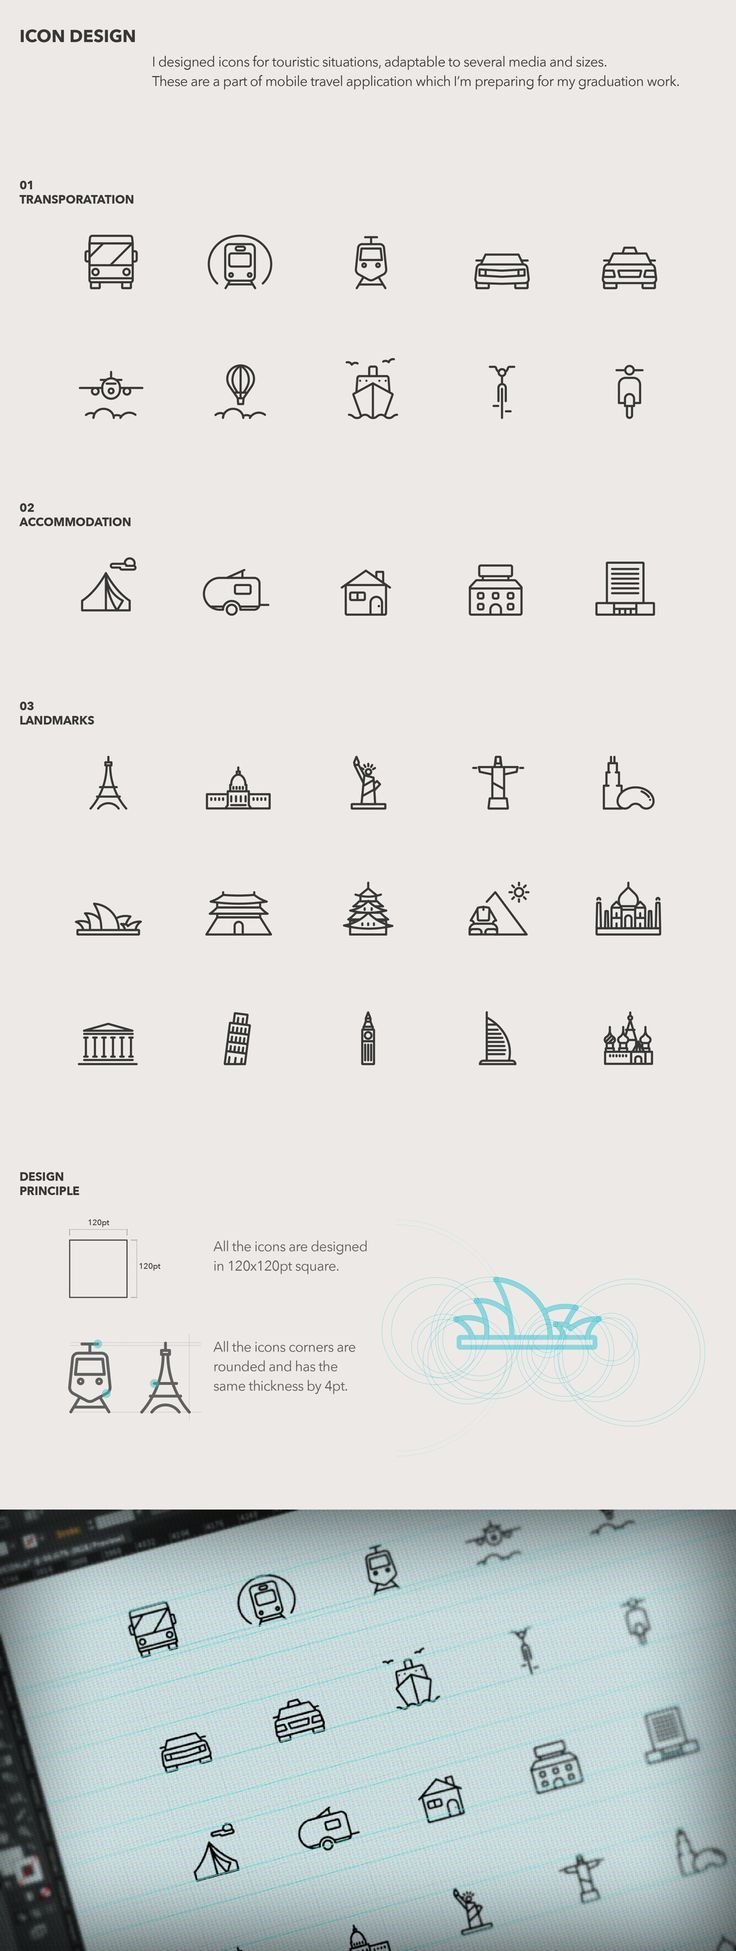 Touristic icon design on Behance